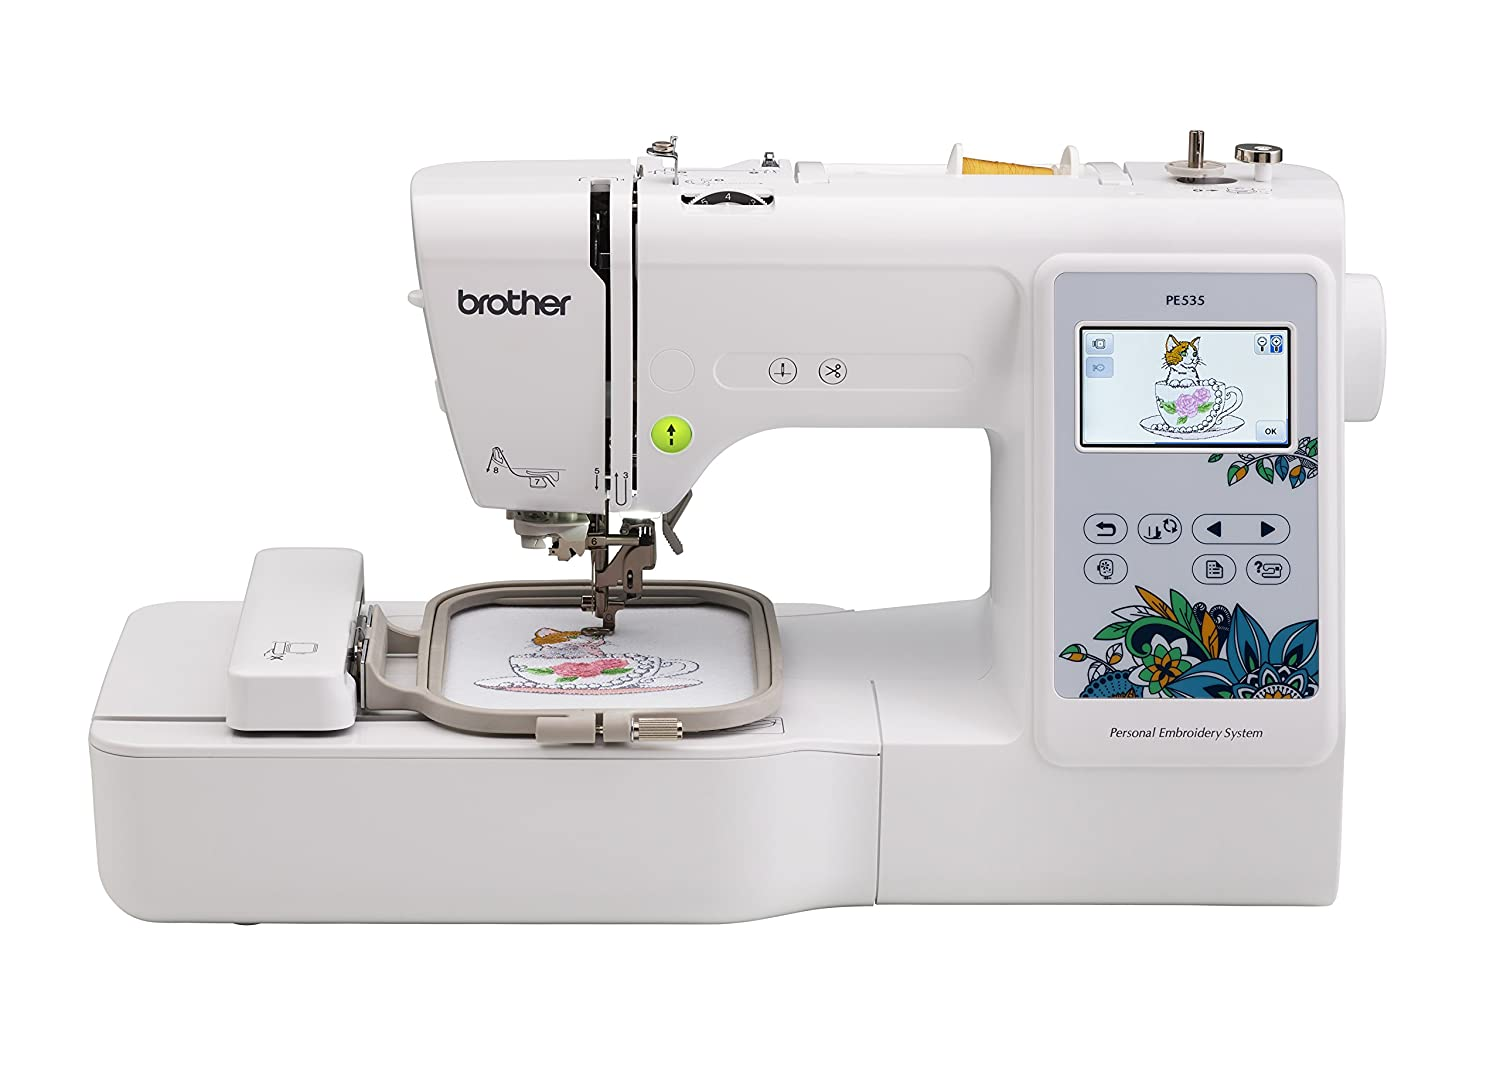 Brother Pe535 Embroidery Machine With 80 Built In Designs by Brother